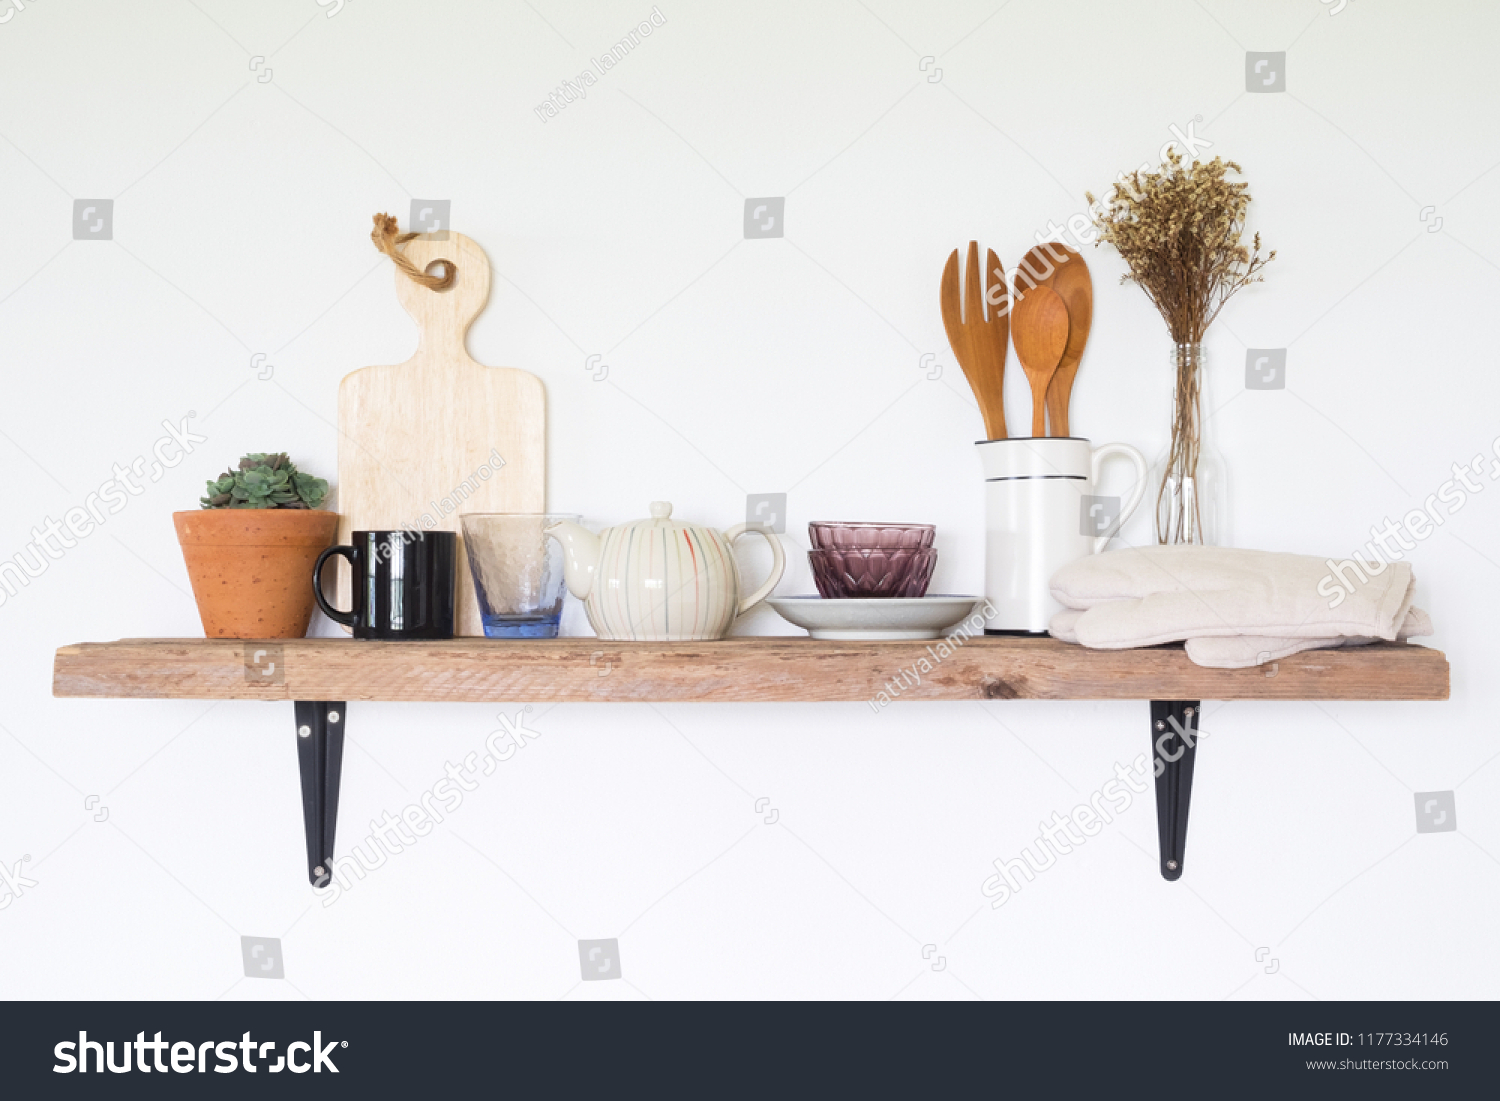 Utensils on wooden shelf in kitchen #1177334146